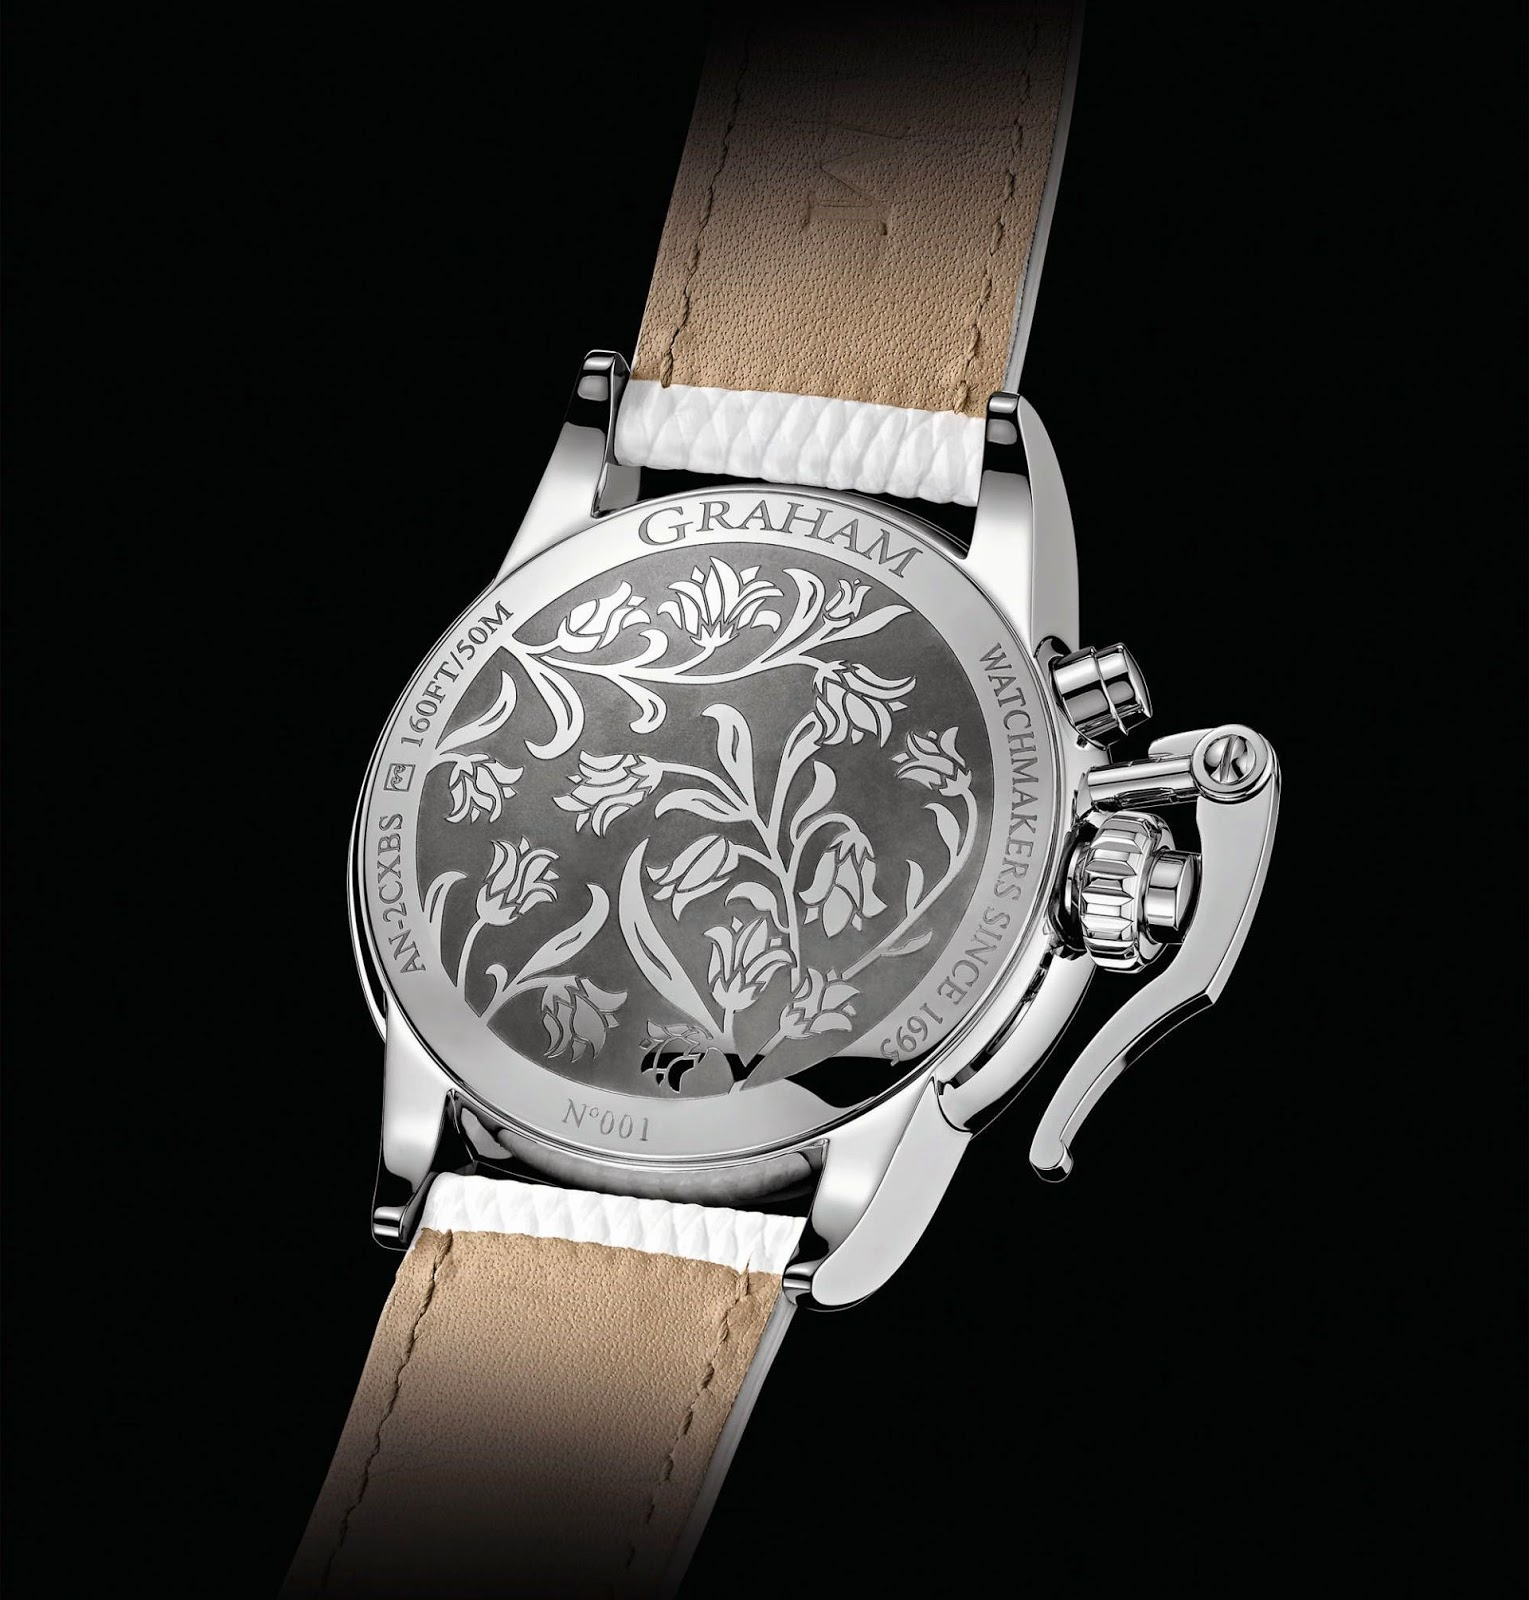 GRAHAM Chronofighter 1695 Lady Moon watch case back